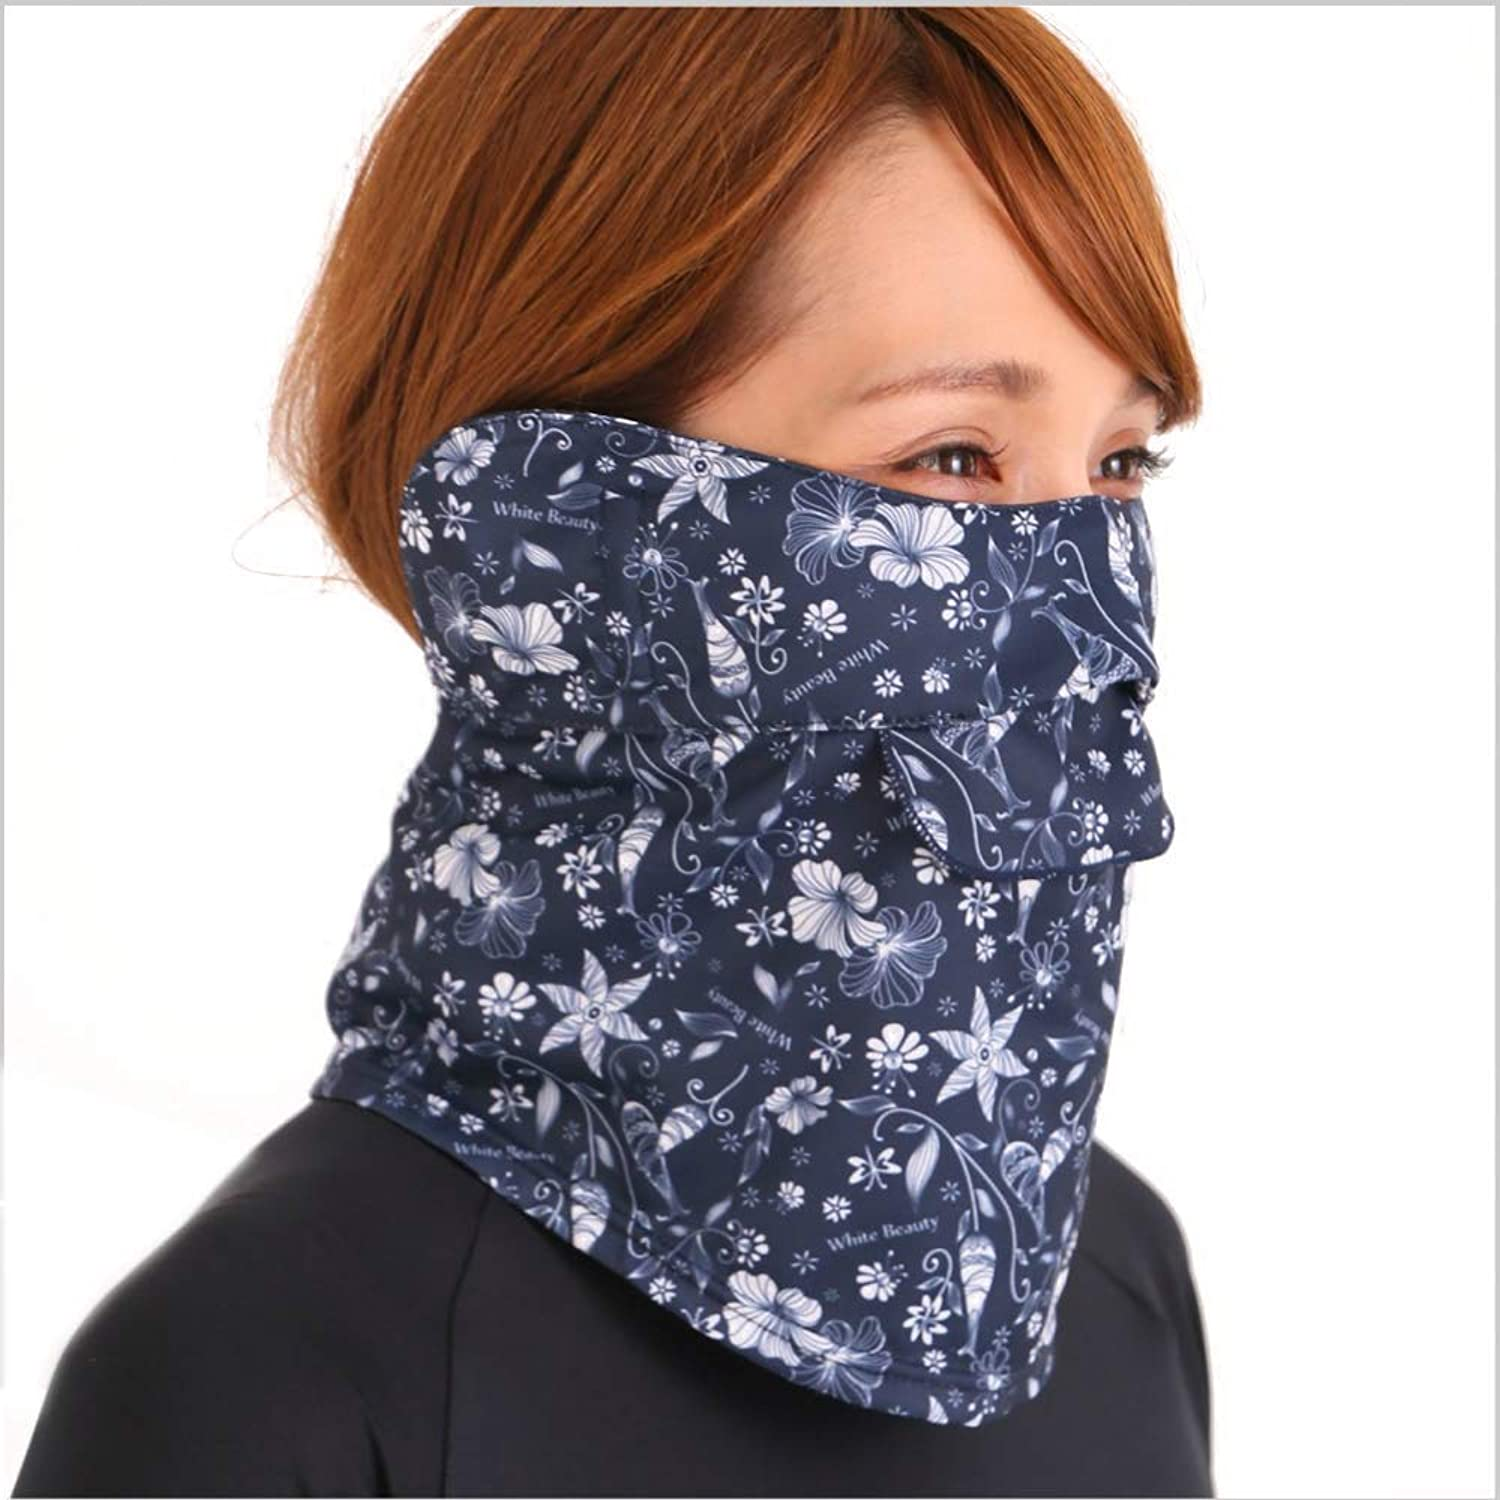 White Beauty suffocating no UV cut face cover C type (floral pattern Navy)